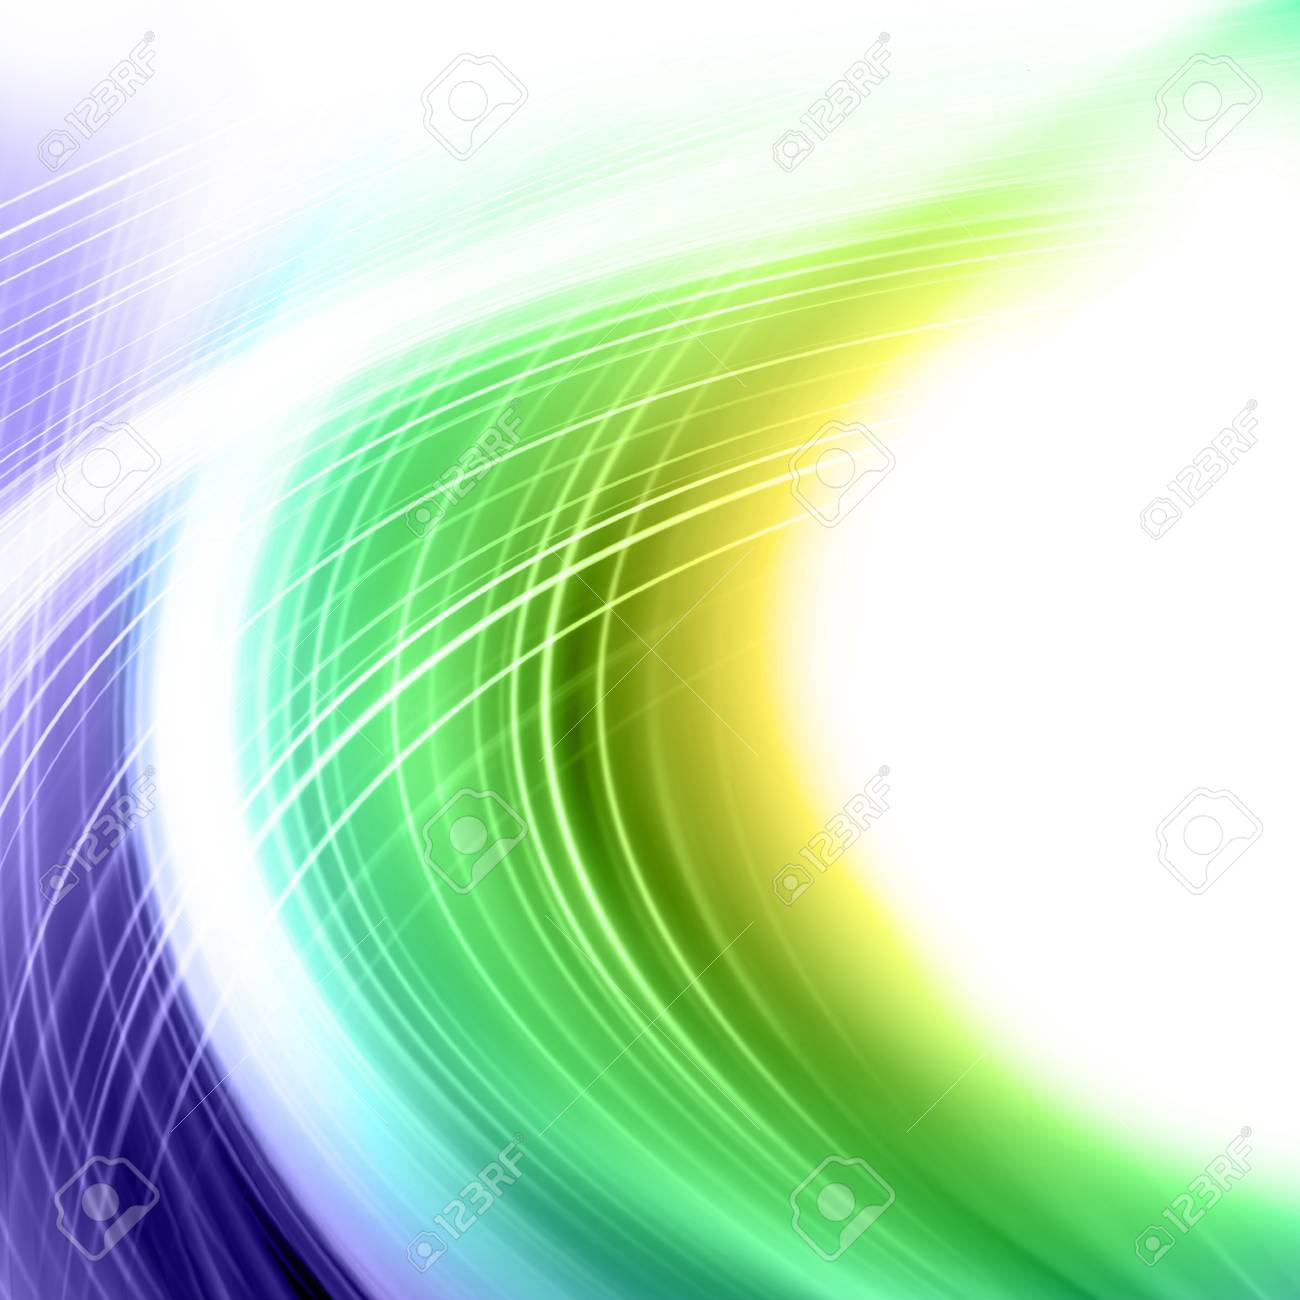 Abstract elegant background design with space for your text Stock Photo - 12582677